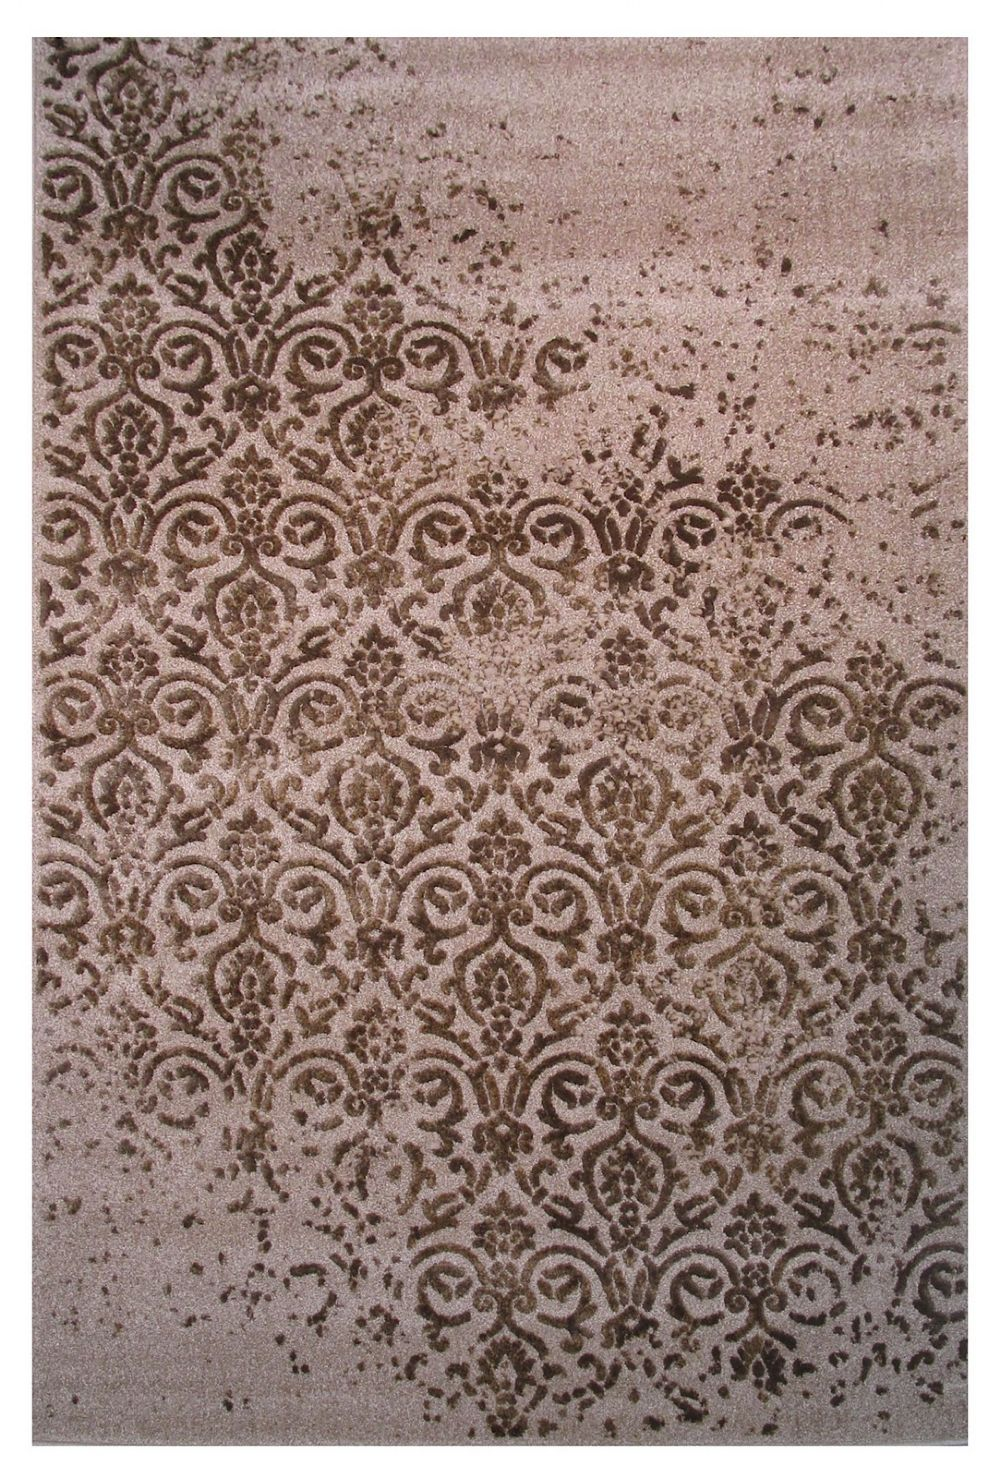 la rugs vintage transitional area rug collection